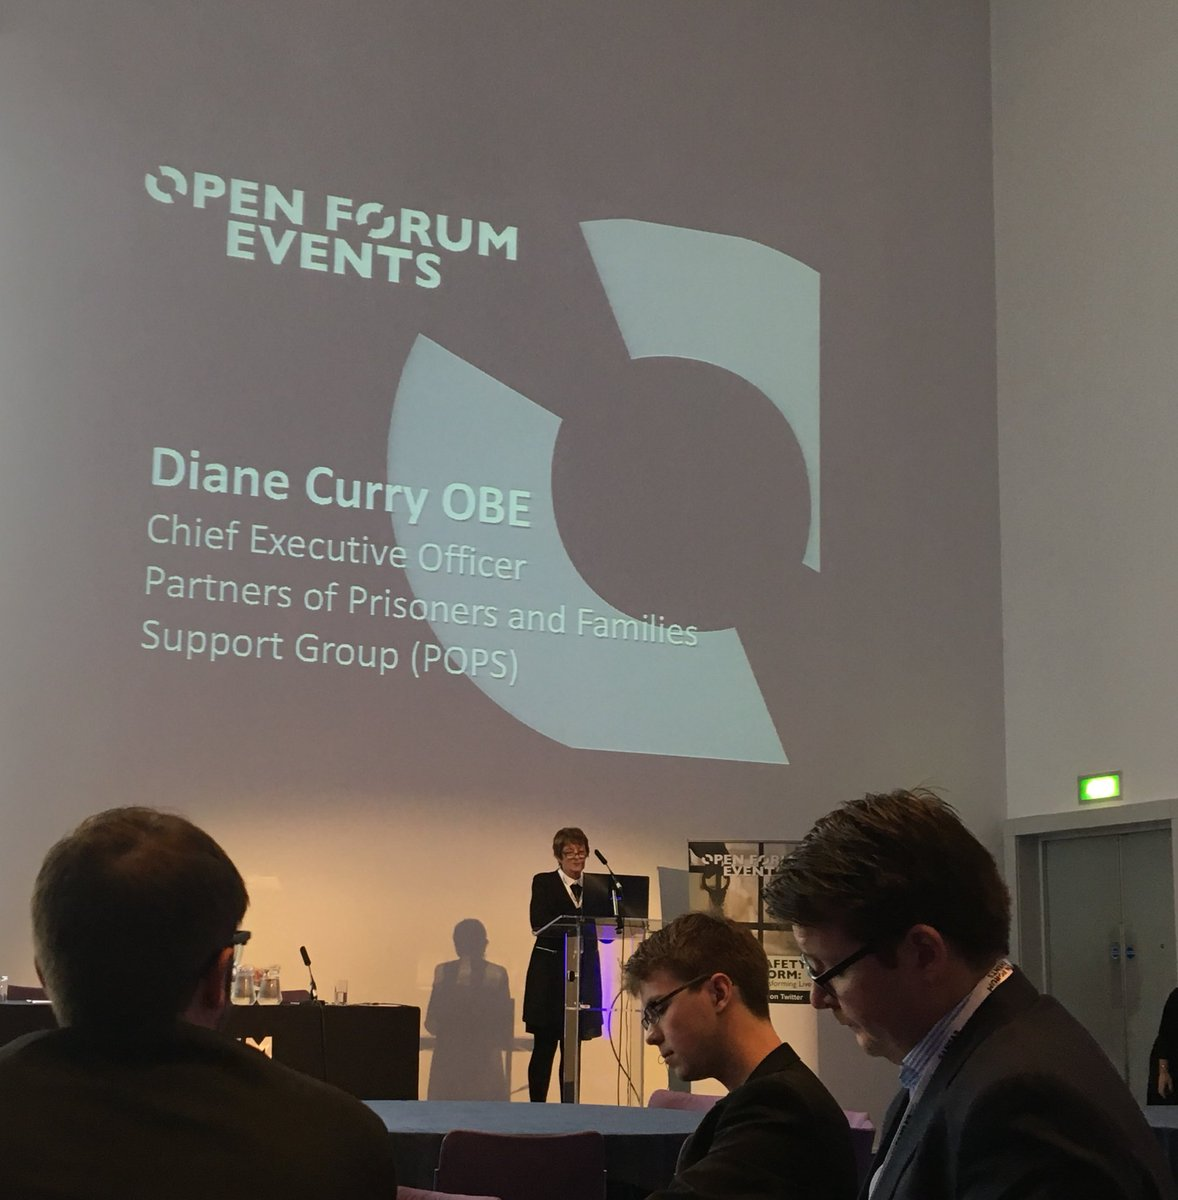 Fantastic opening from @dianecurry51 Looks like an insightful day #Families #Reform #change  #offreform<br>http://pic.twitter.com/L63Jnv5eZv